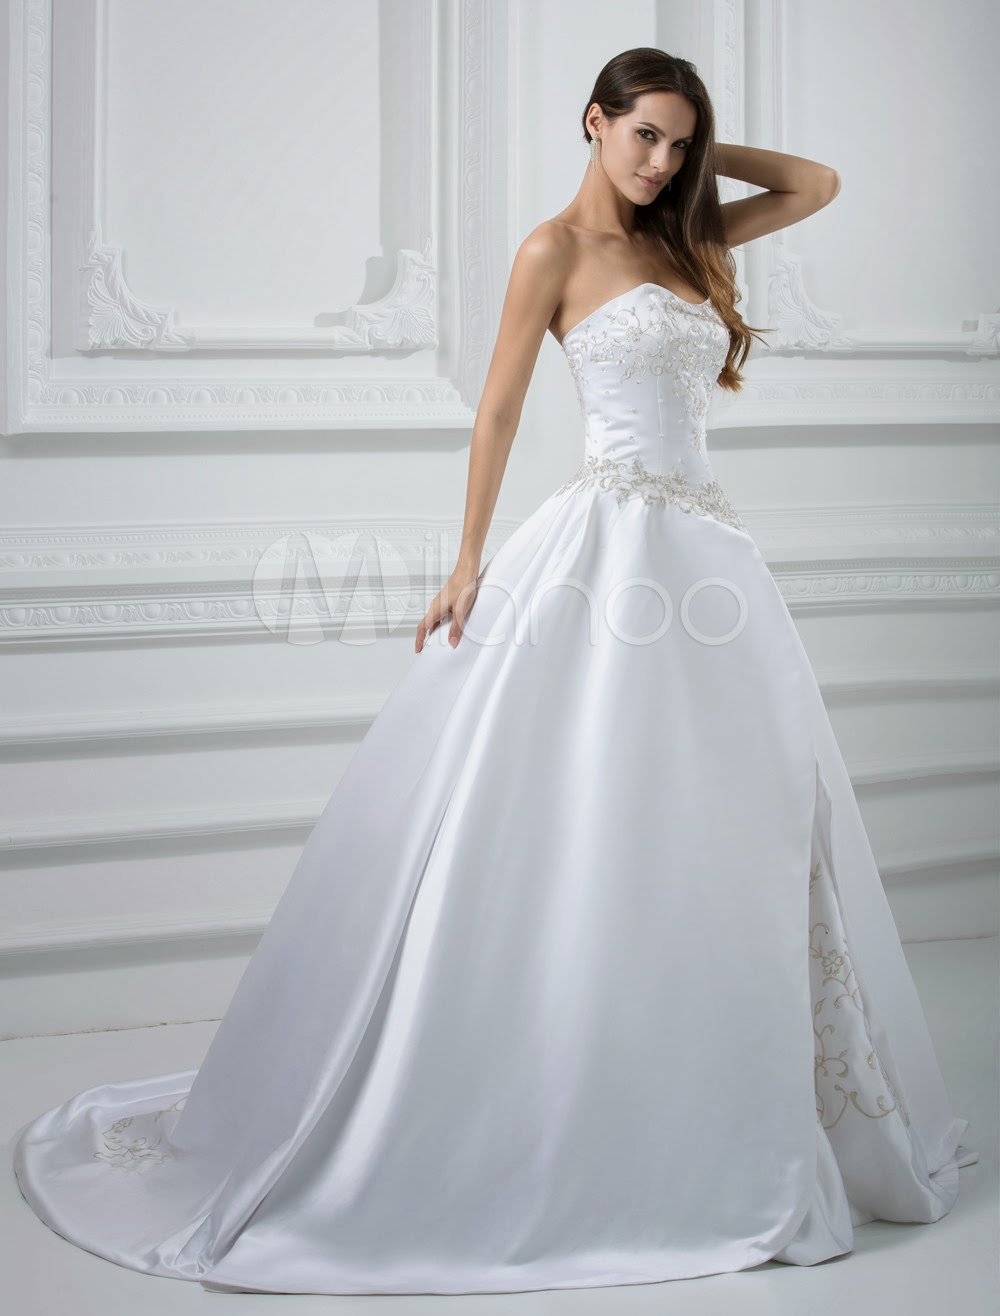 China Wholesale Dresses - Euro Style Ball Gown Sweetheart Satin Strapless Beading Embroidery Satin Wedding Dress